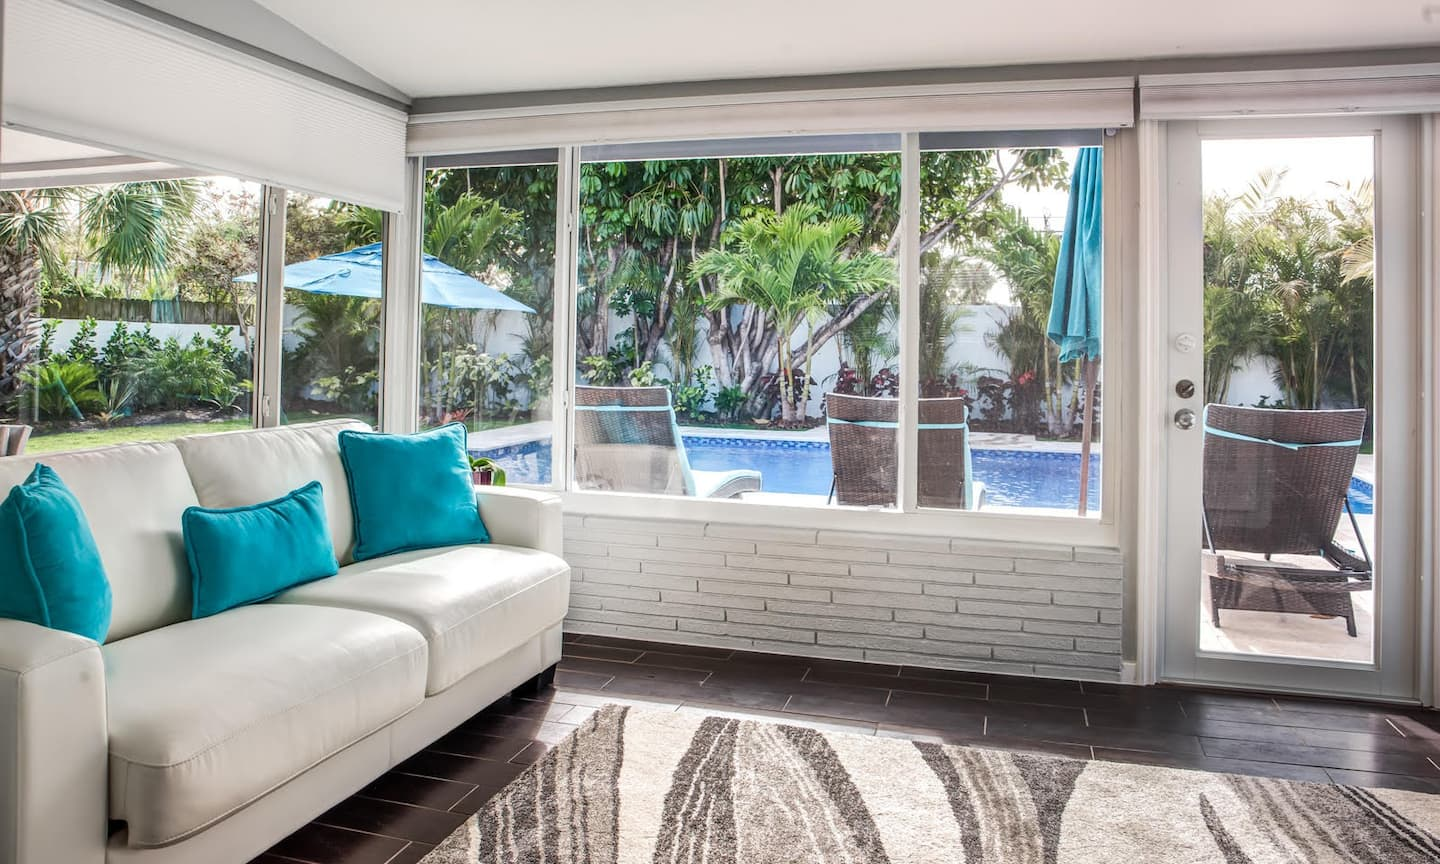 Best Airbnb in Fort Lauderdale with Pool